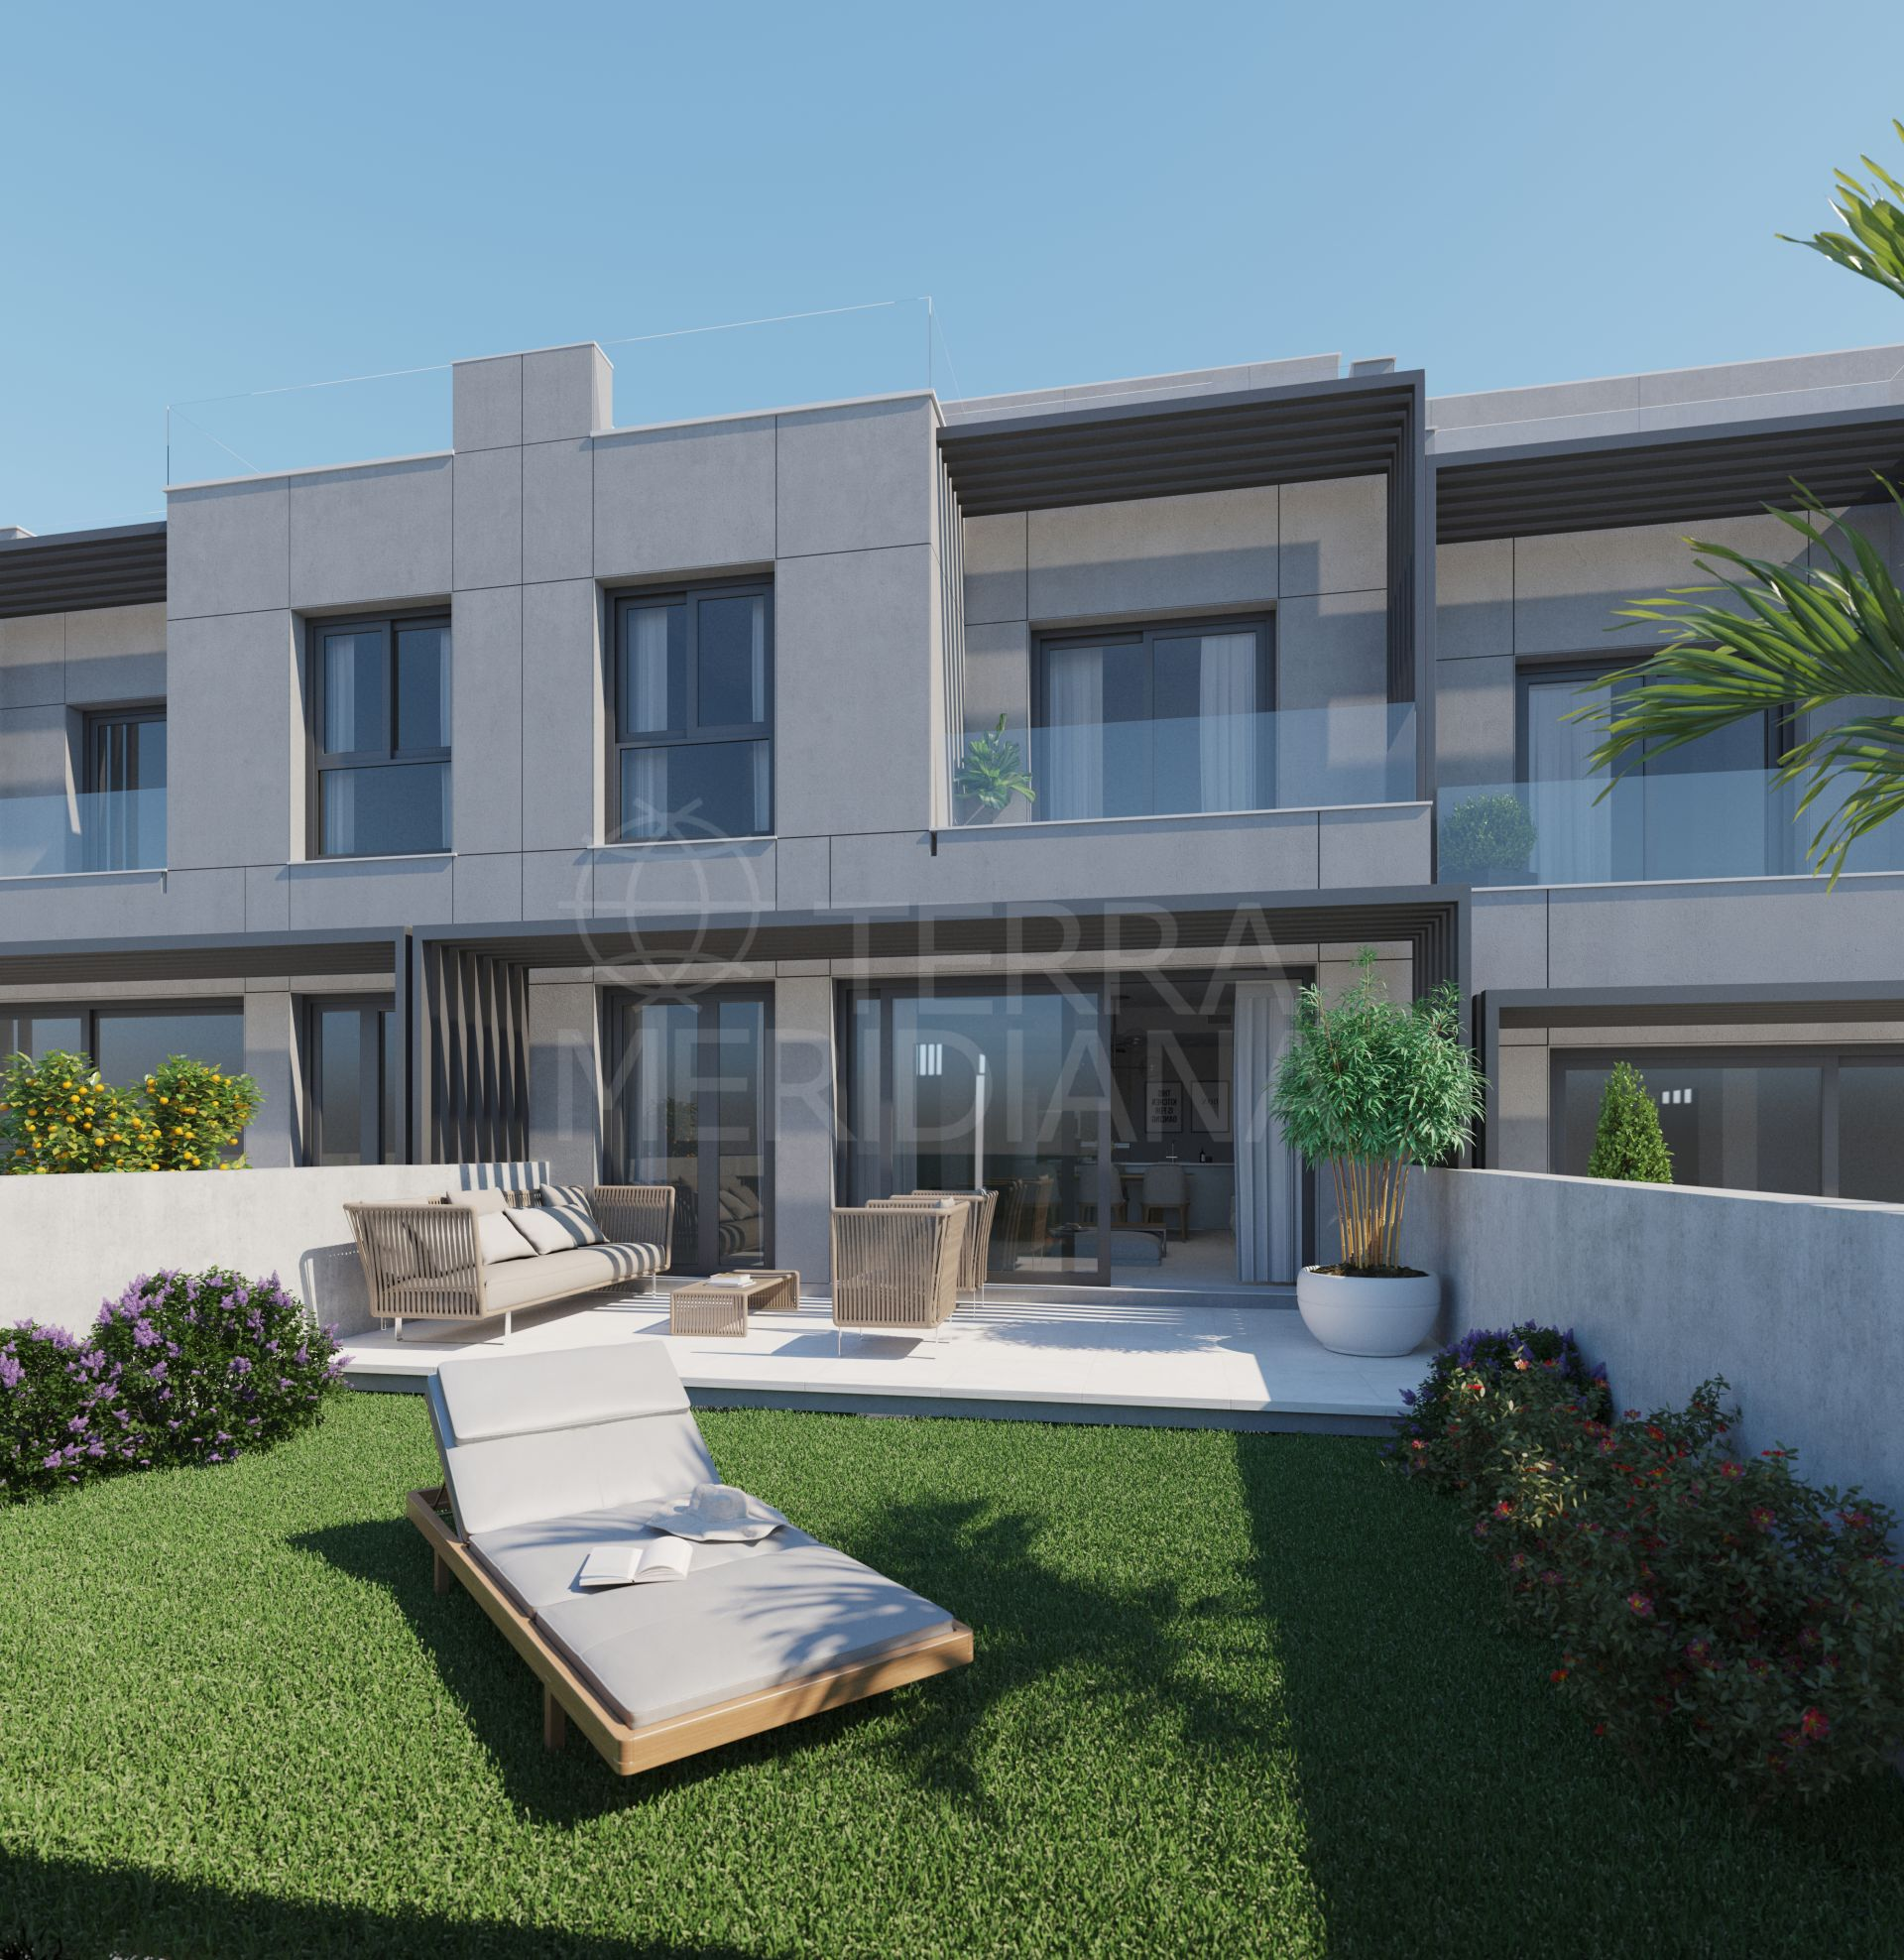 3 Bedroom Townhouse: Brand New Deluxe 3 Bedroom Townhouse With Private Garden